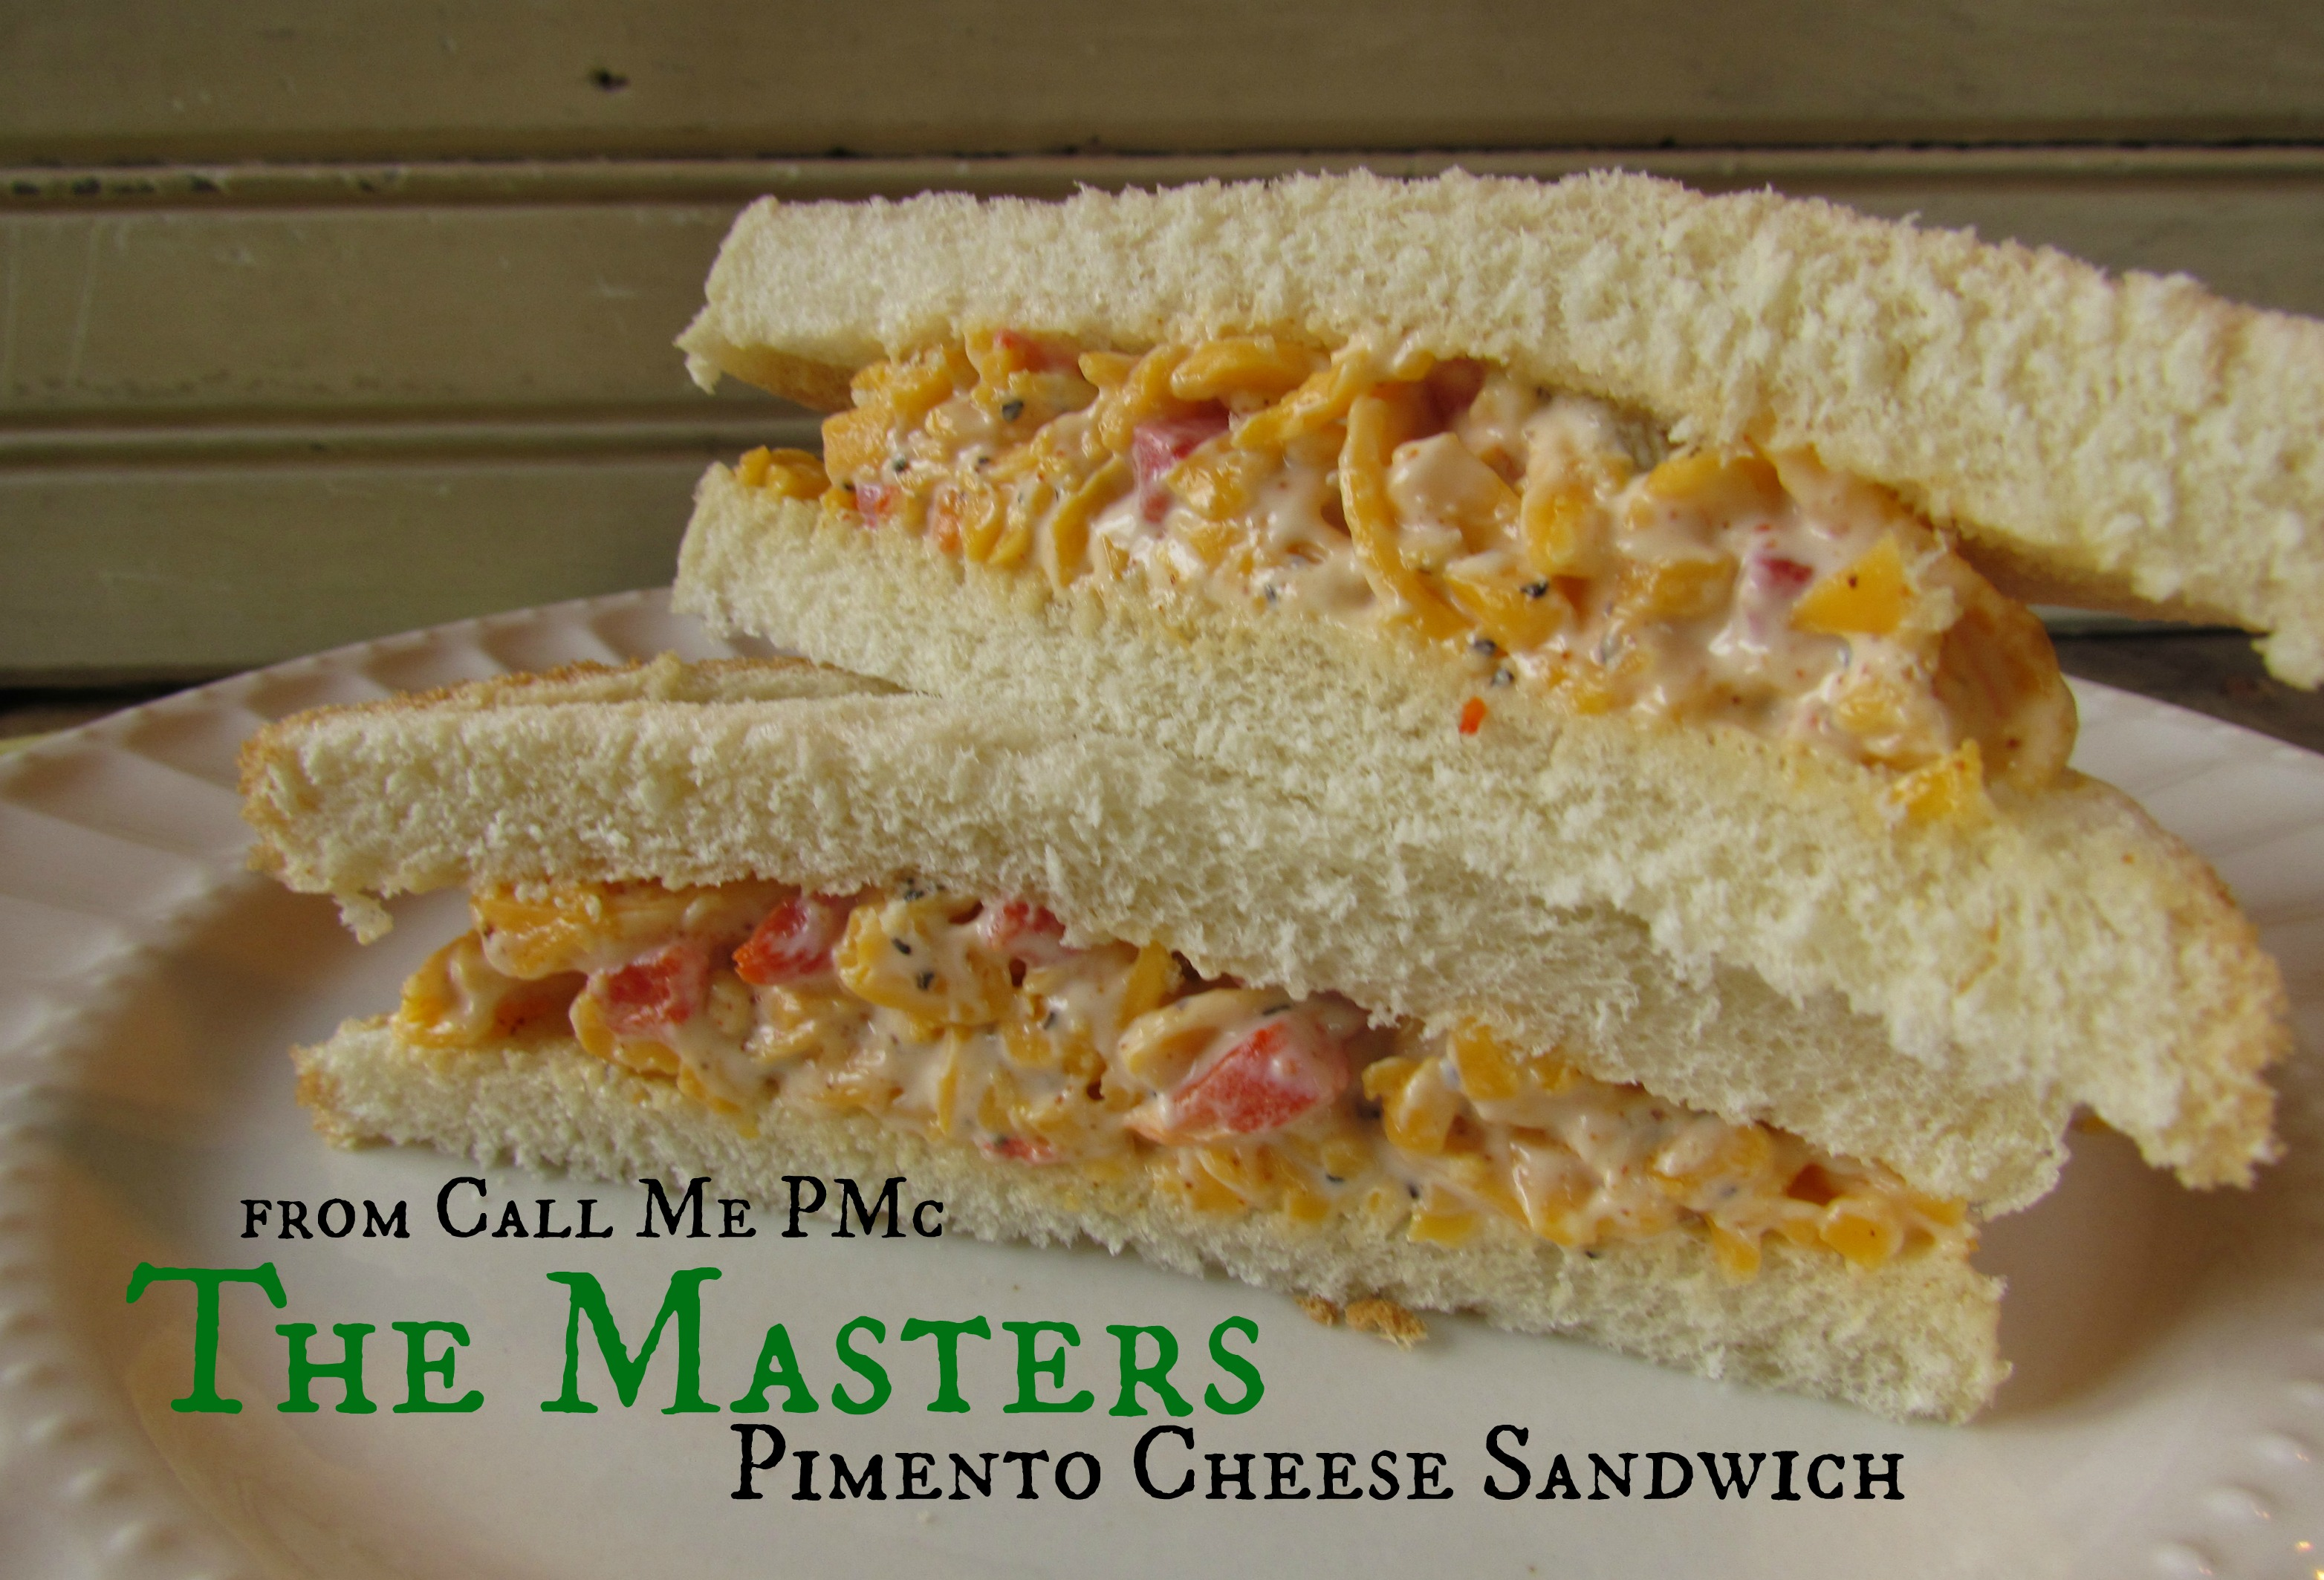 The Masters Pimento Cheese Sandwich from Call Me PMc